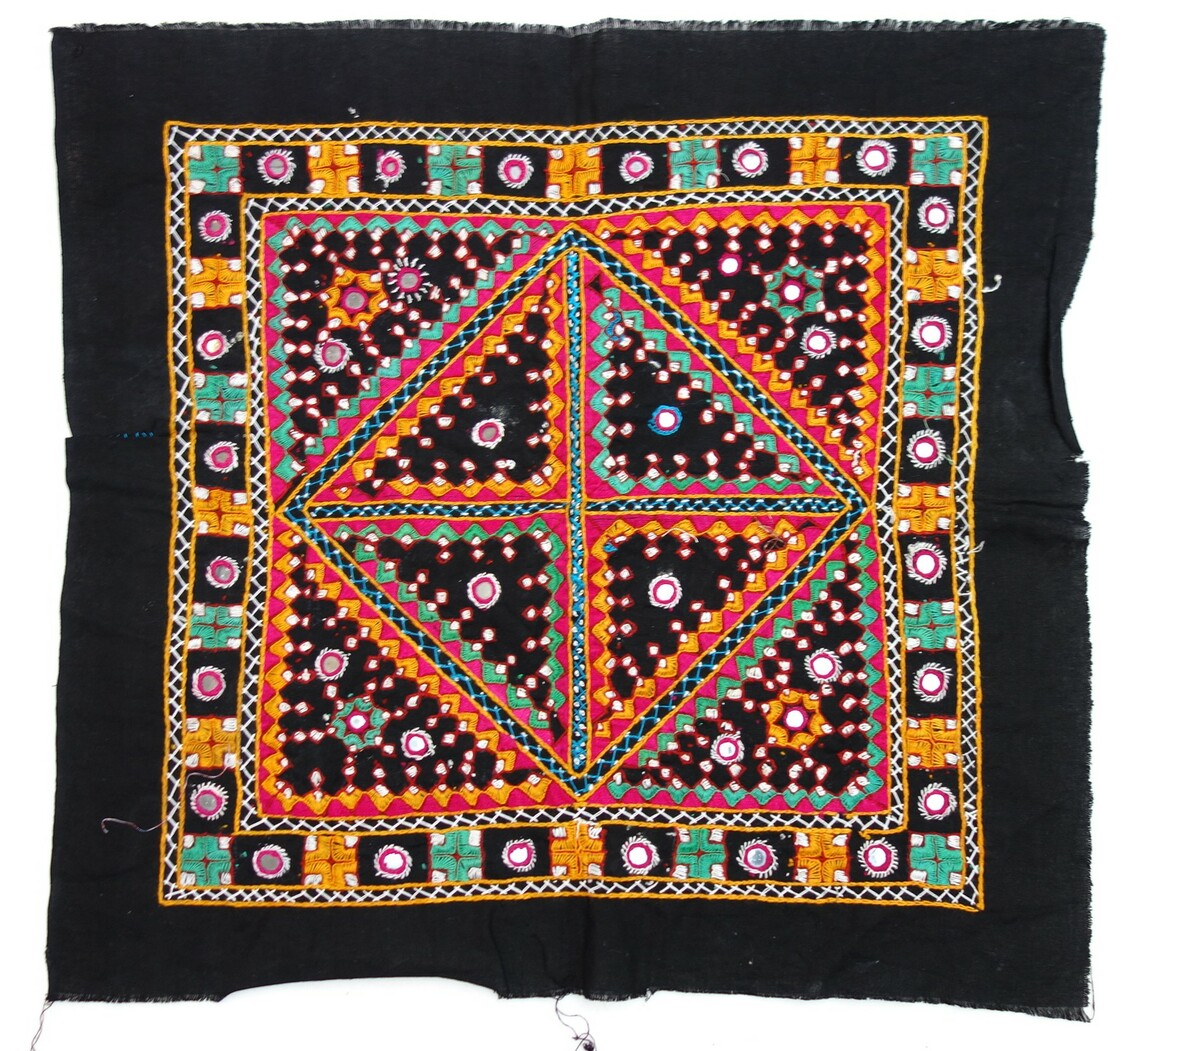 Sample of embroidered black cotton cloth with a square design enclosing various, interconnecting geometric shapes and applied mirrors. Factory woven cloth, hand embroidery (blanket stitch, stem stitch, chain stitch, couched herringbone stitch). India, late 20th century (TRC 2019.0286).